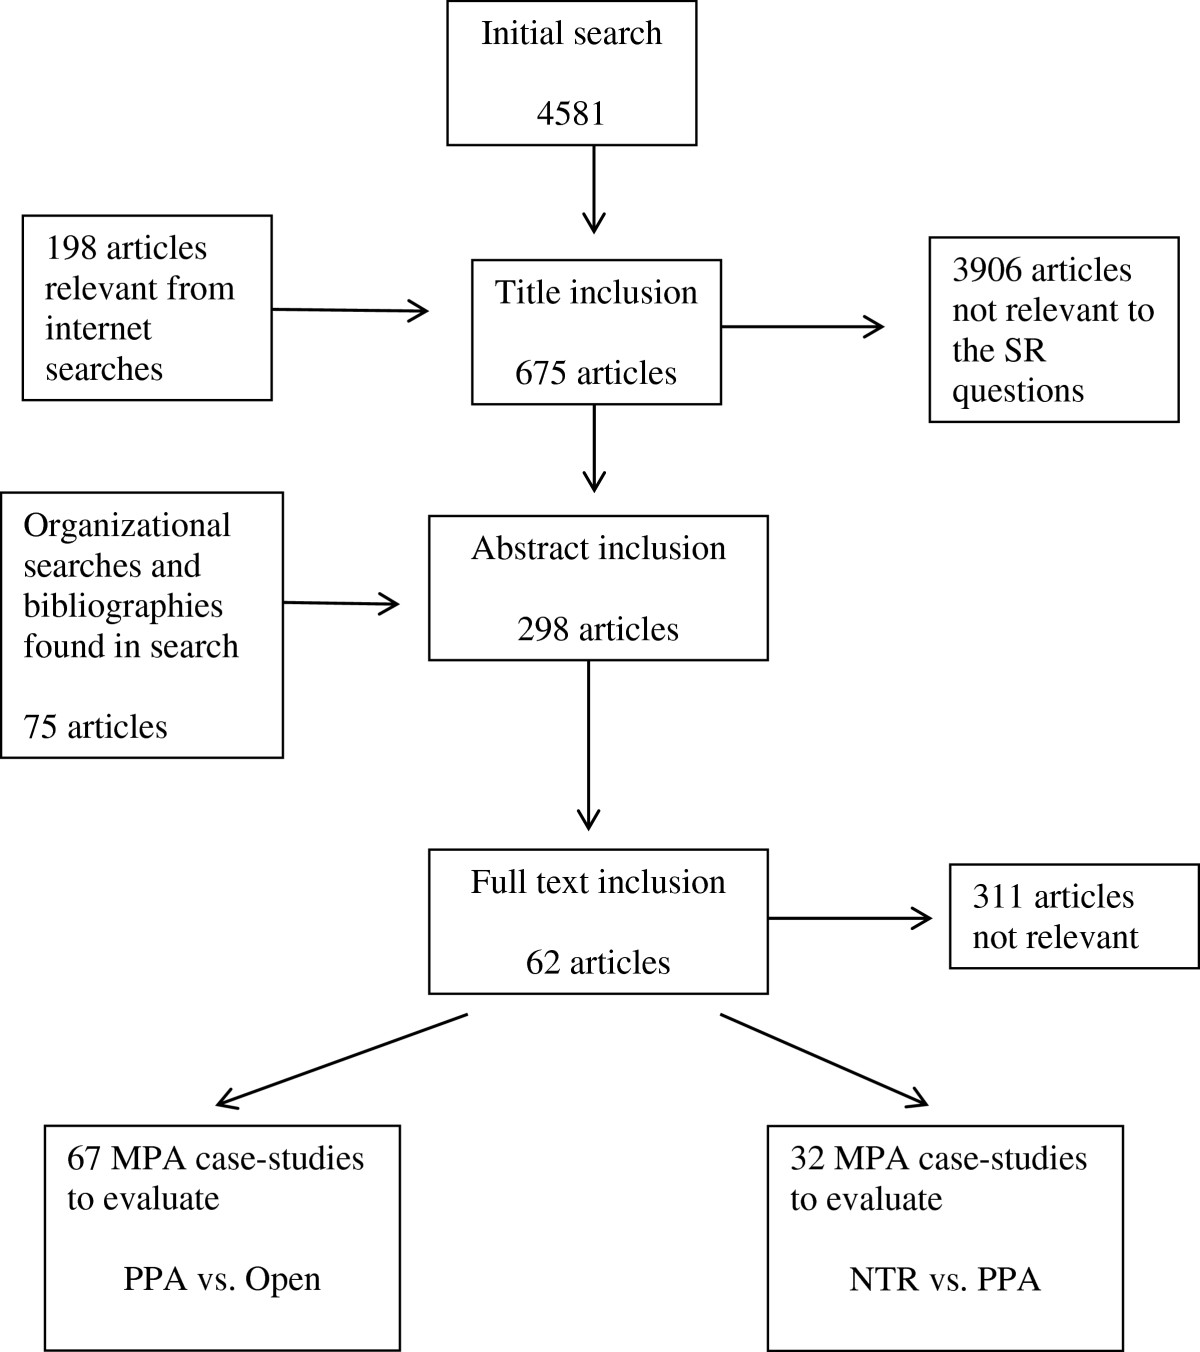 http://static-content.springer.com/image/art%3A10.1186%2F2047-2382-2-4/MediaObjects/13750_2012_Article_21_Fig1_HTML.jpg